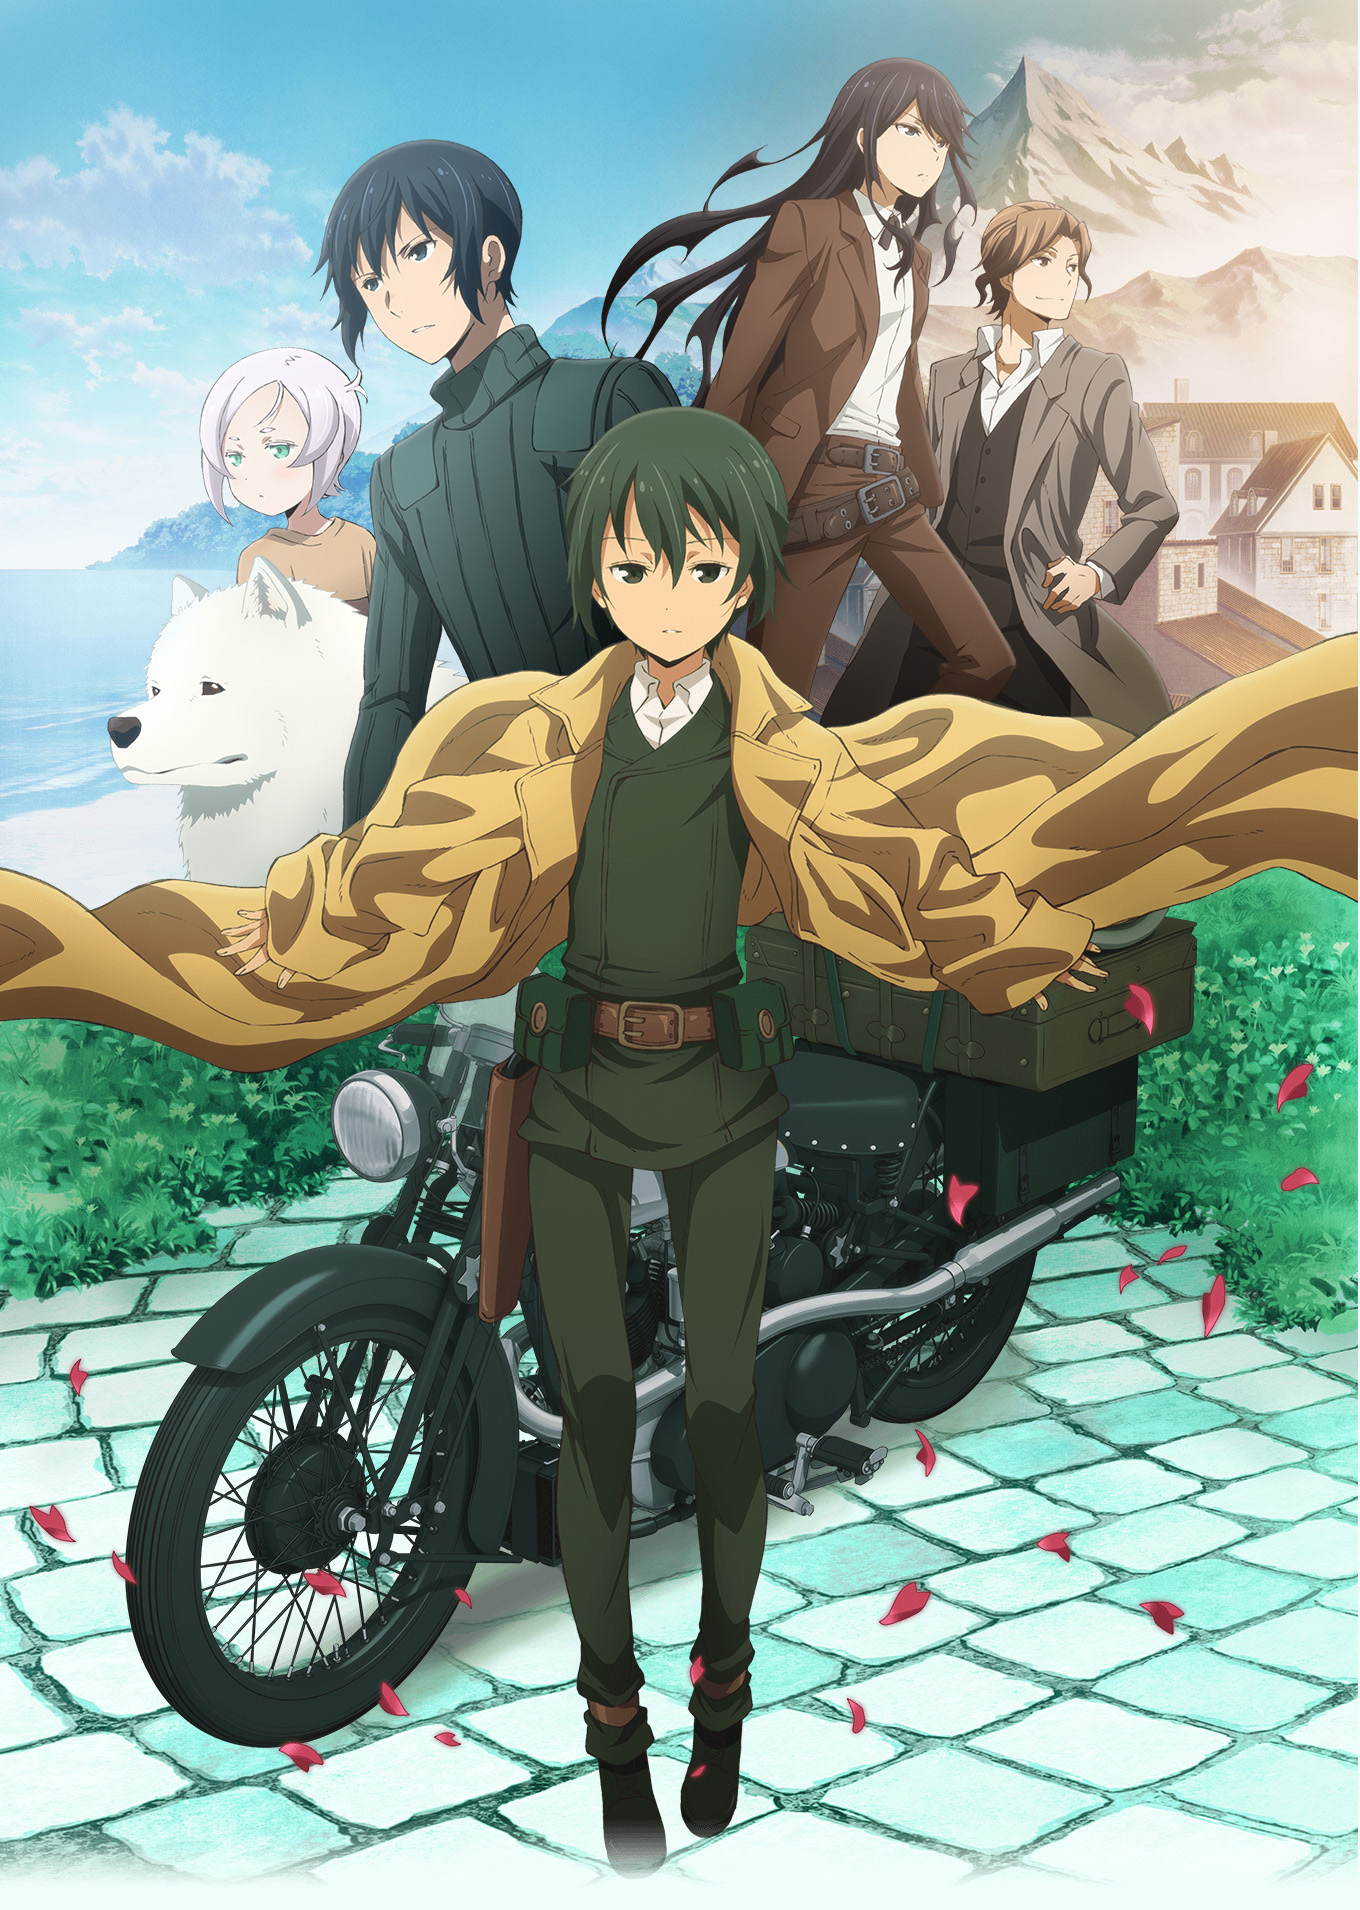 17 [Similar Anime] Like Kino's Journey -the Beautiful World- the Animated Series